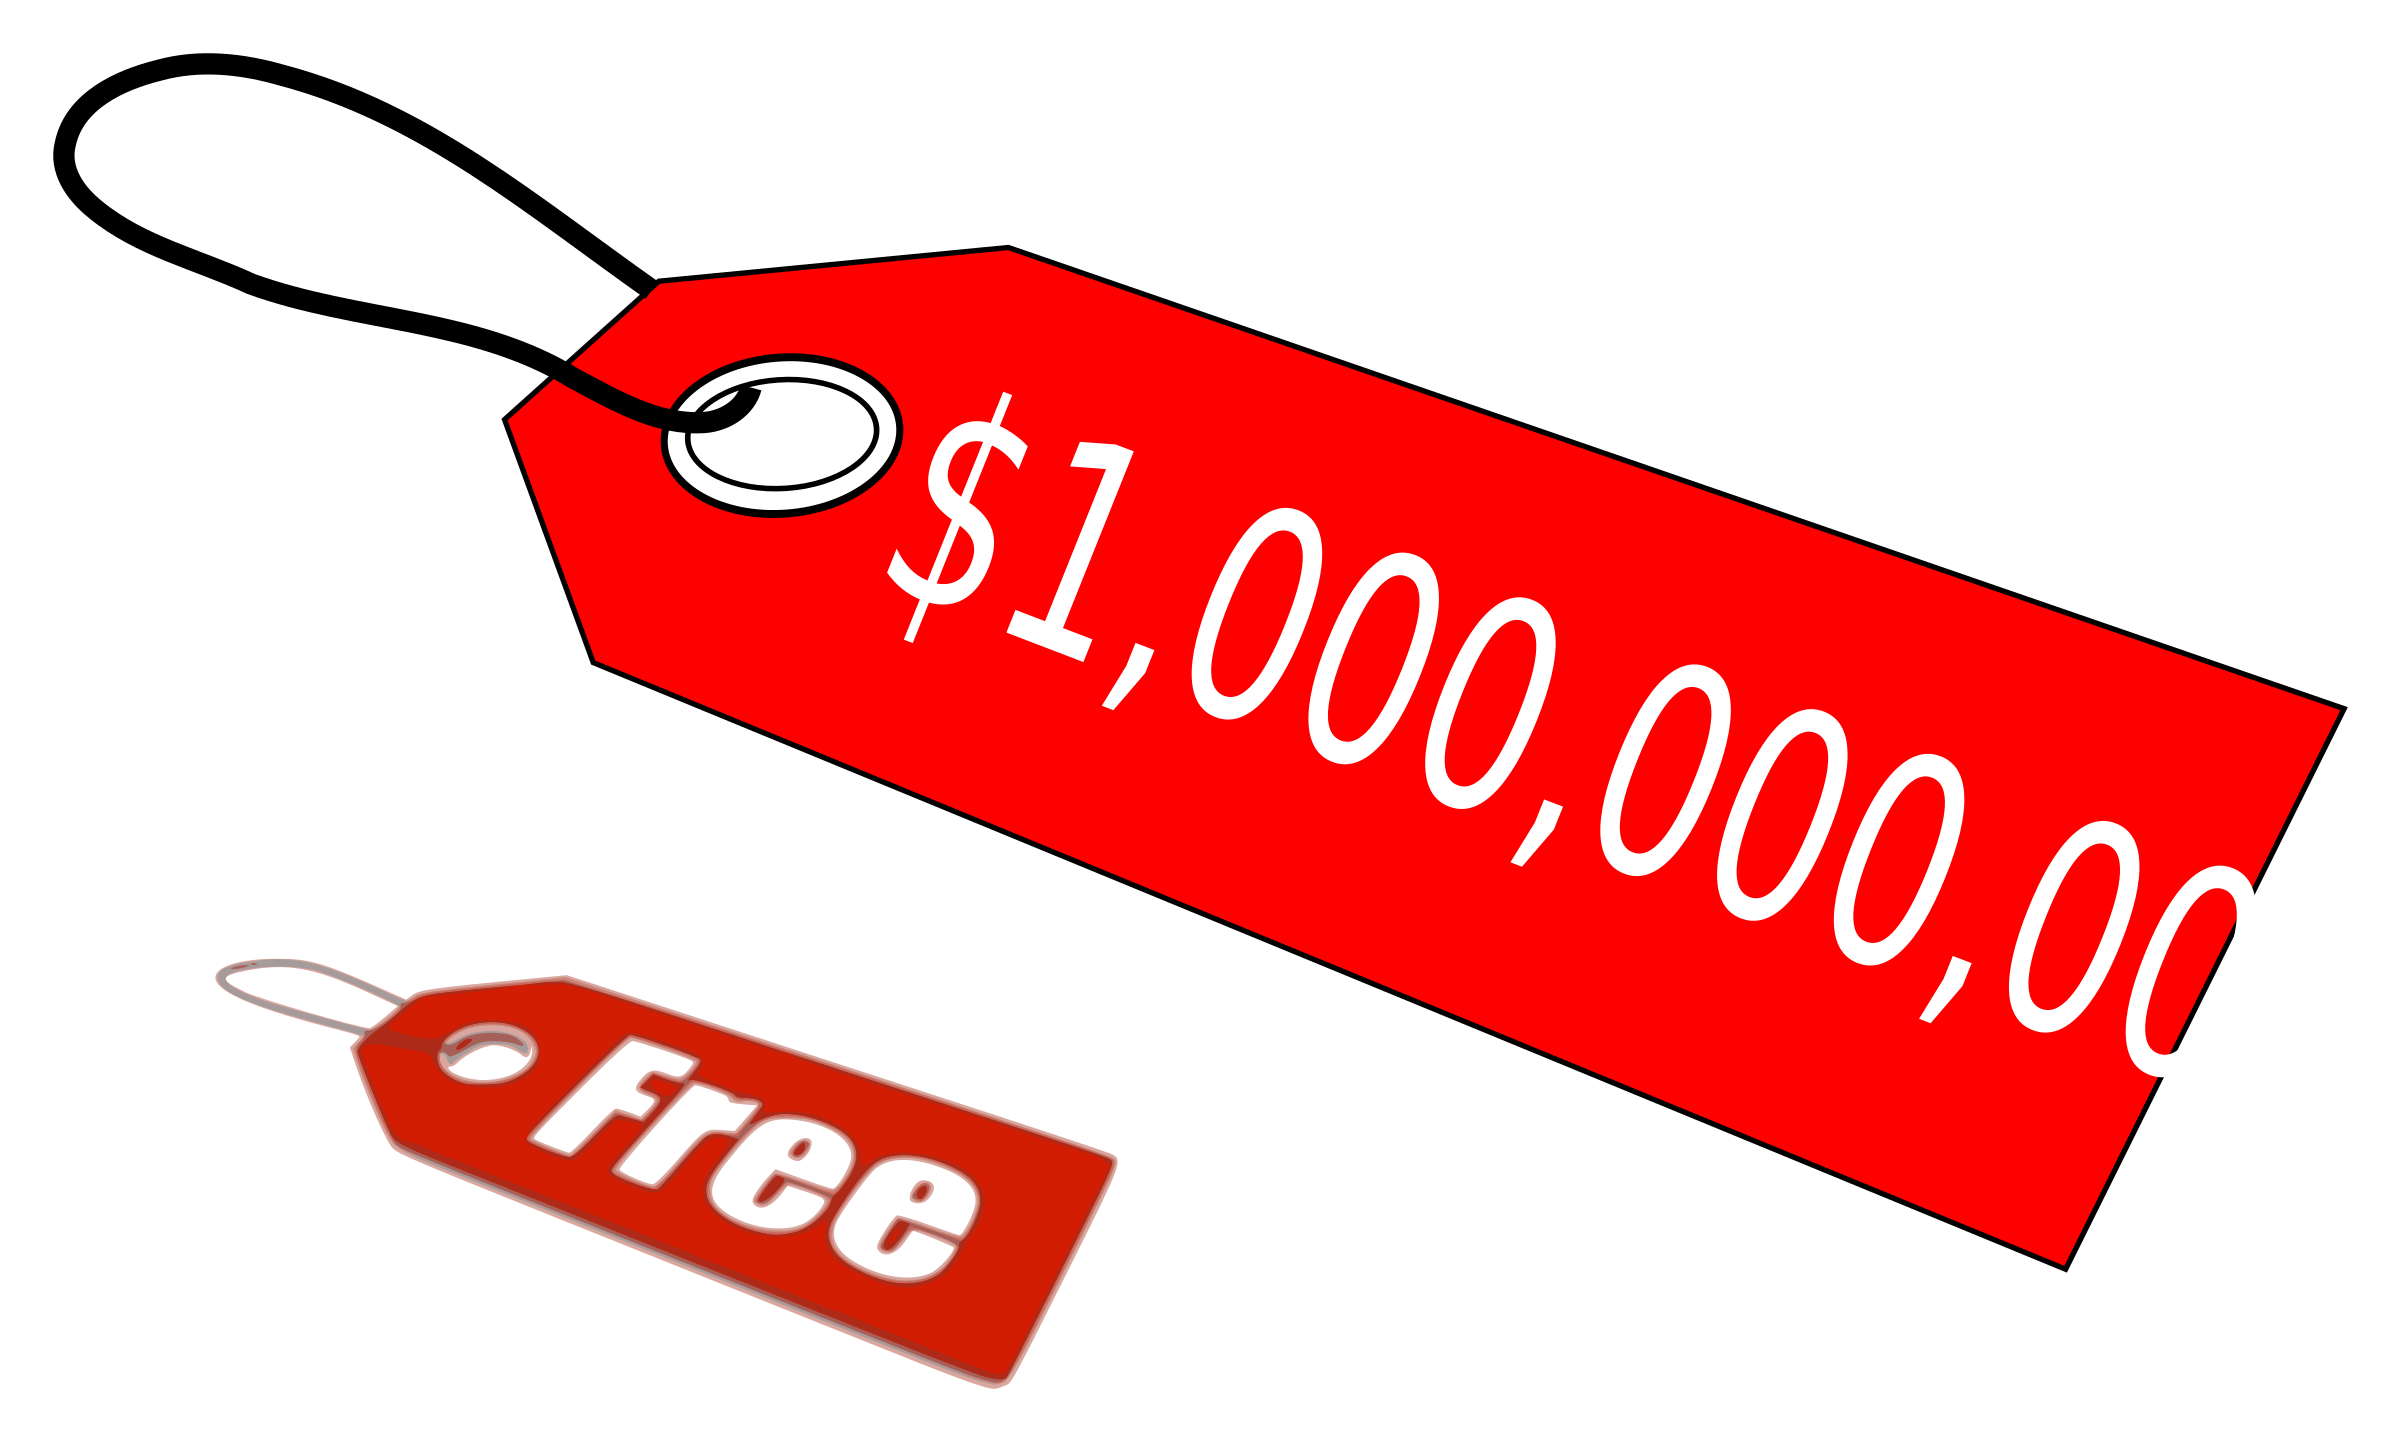 Million Dollar Price Tag Vector Clipart image.